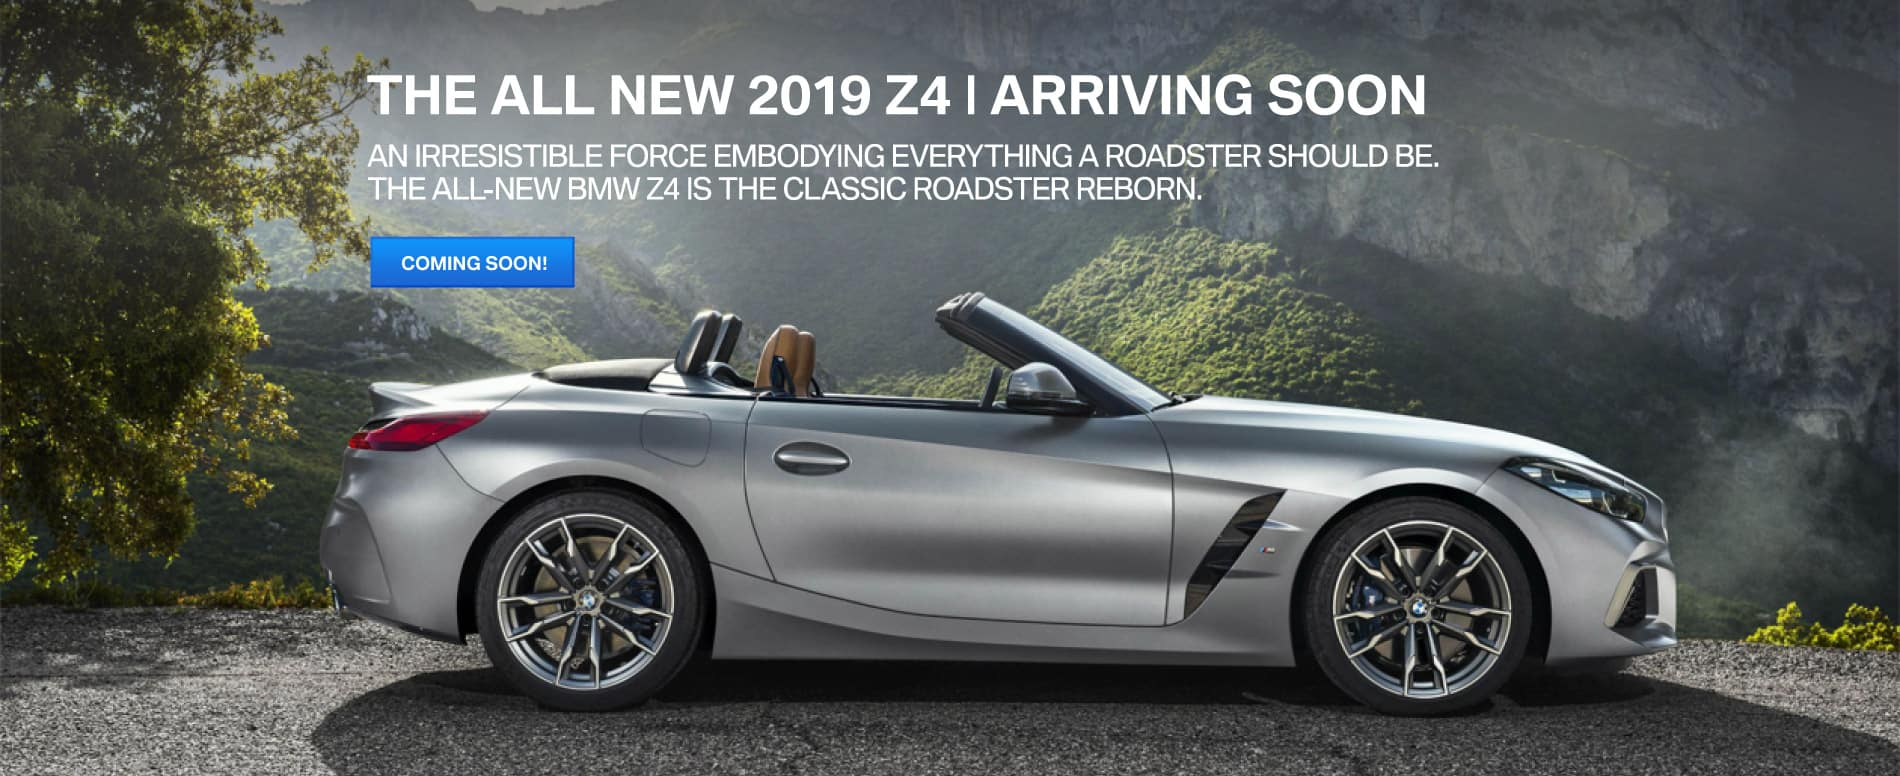 Autobahn BMW | The All New Z4 Series is Almost Here!